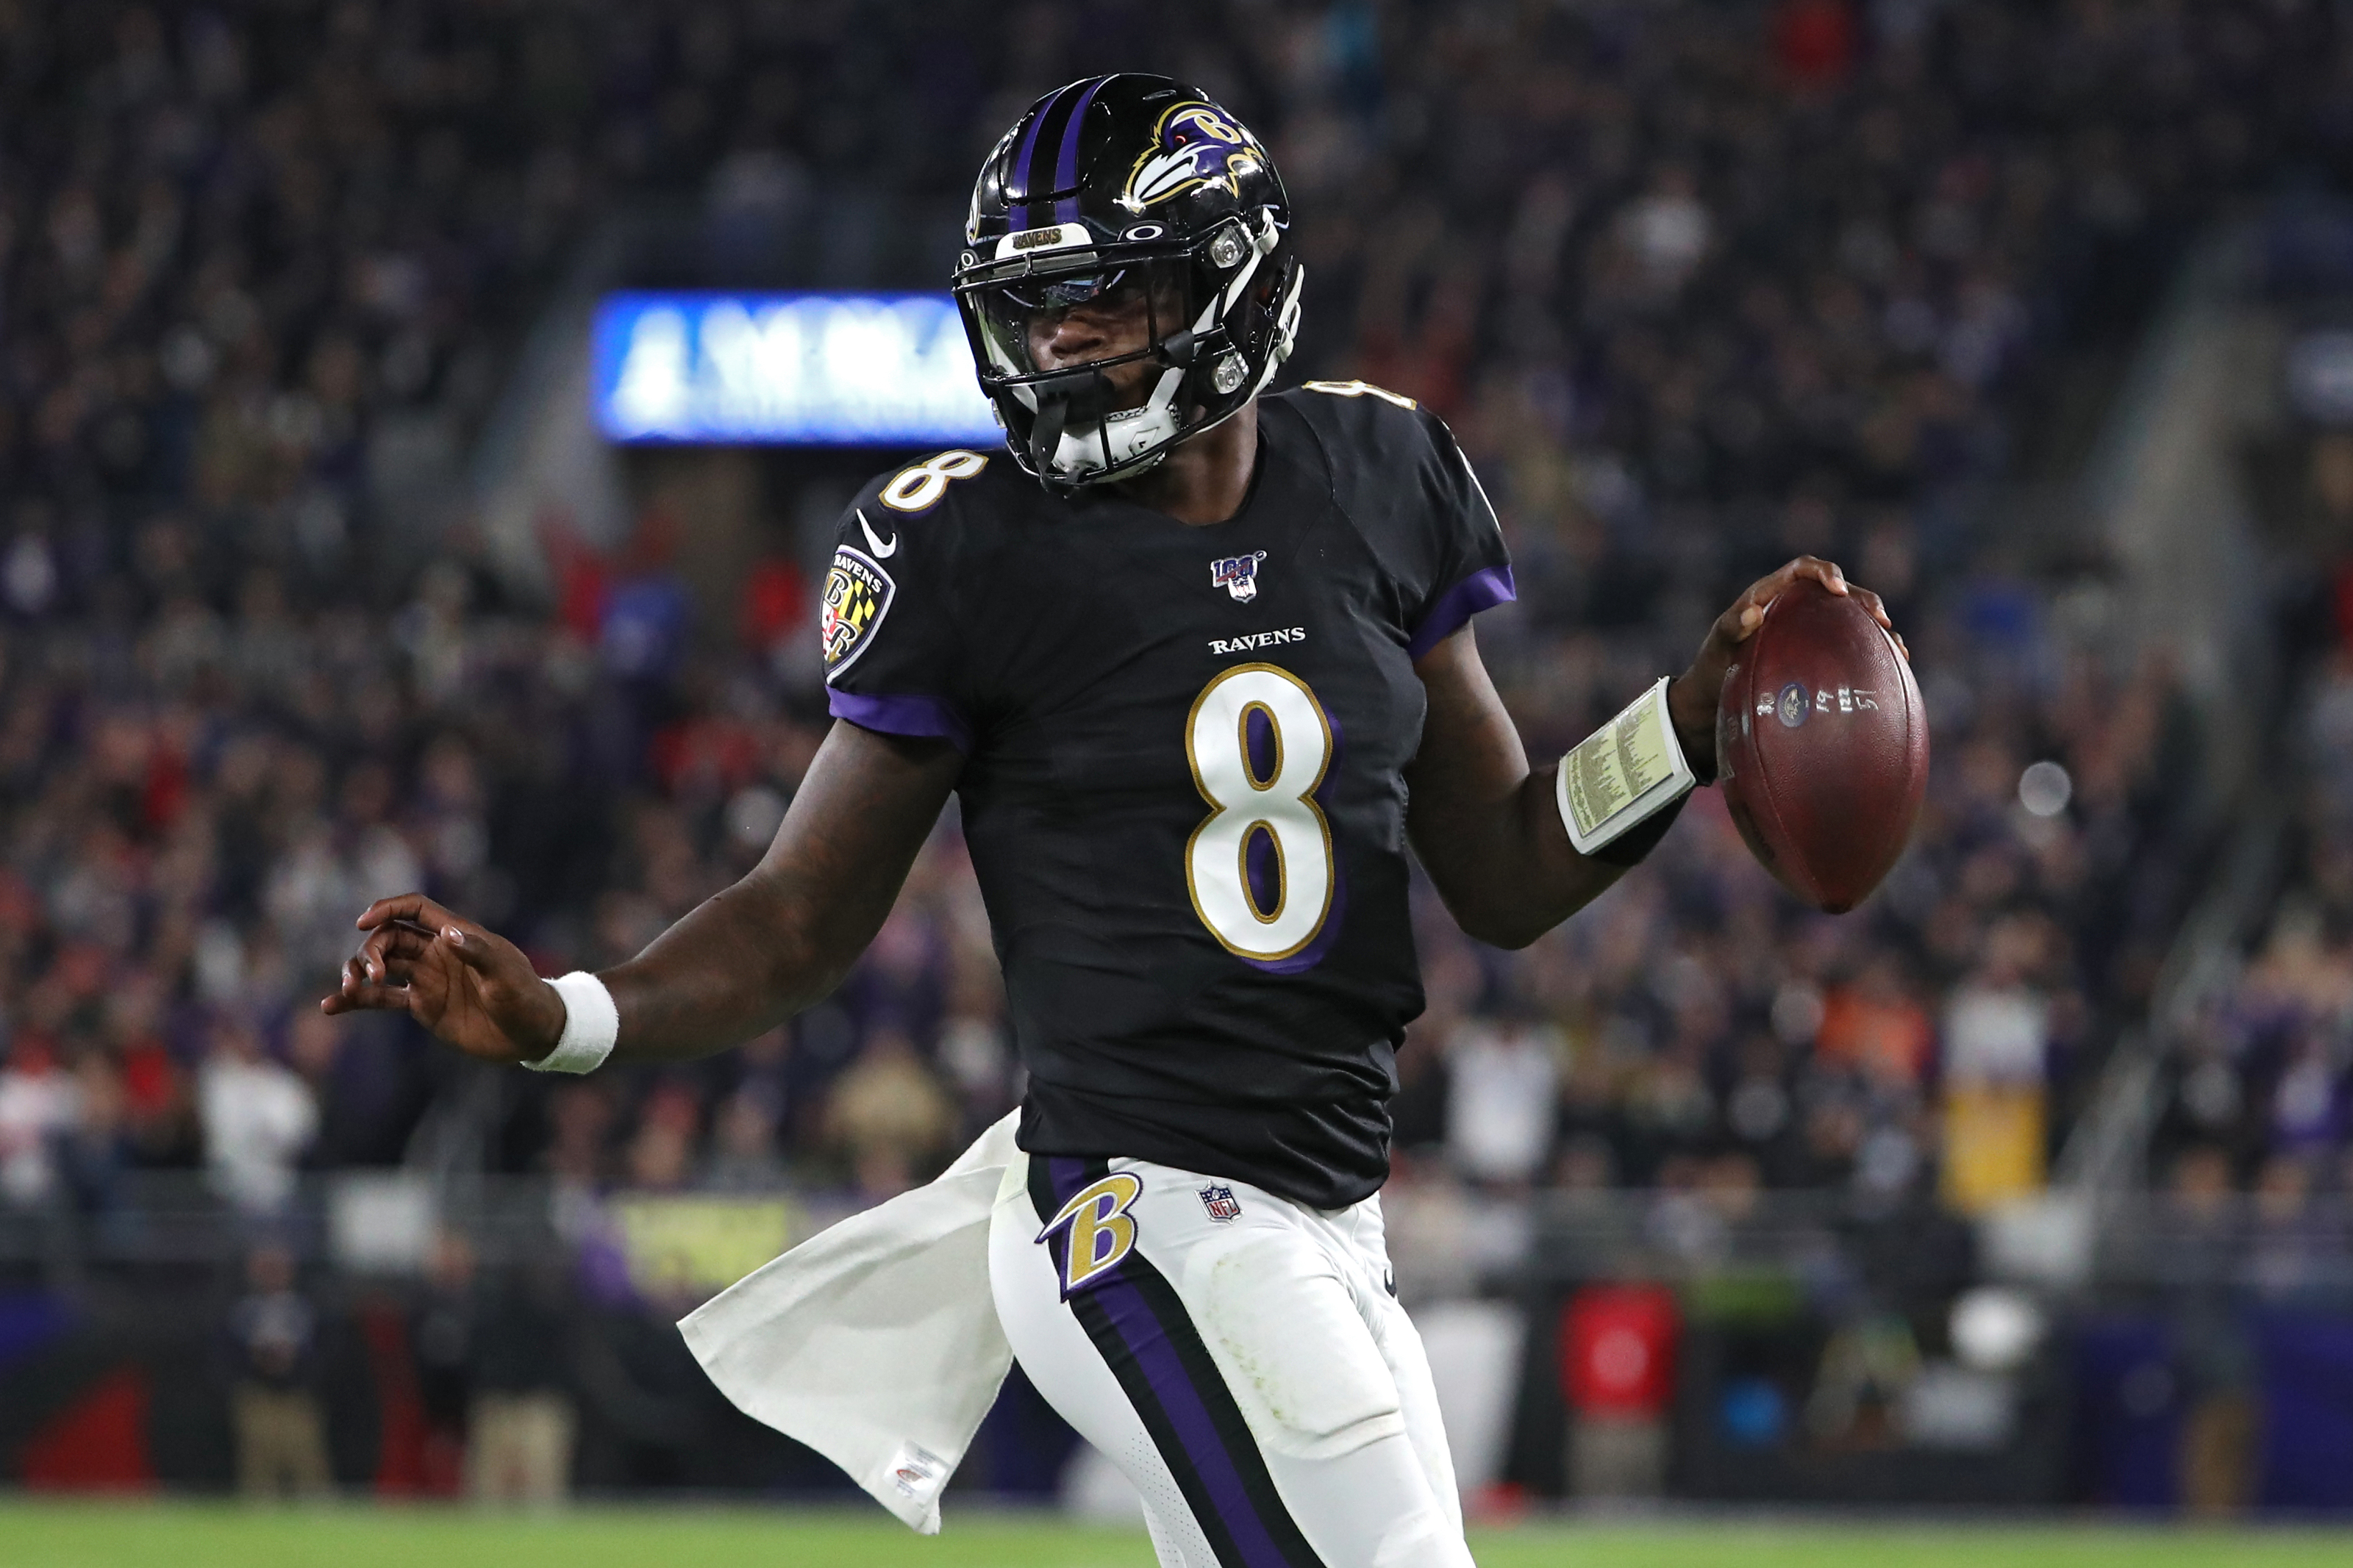 49ers vs ravens betting odds ped use in professional sports betting